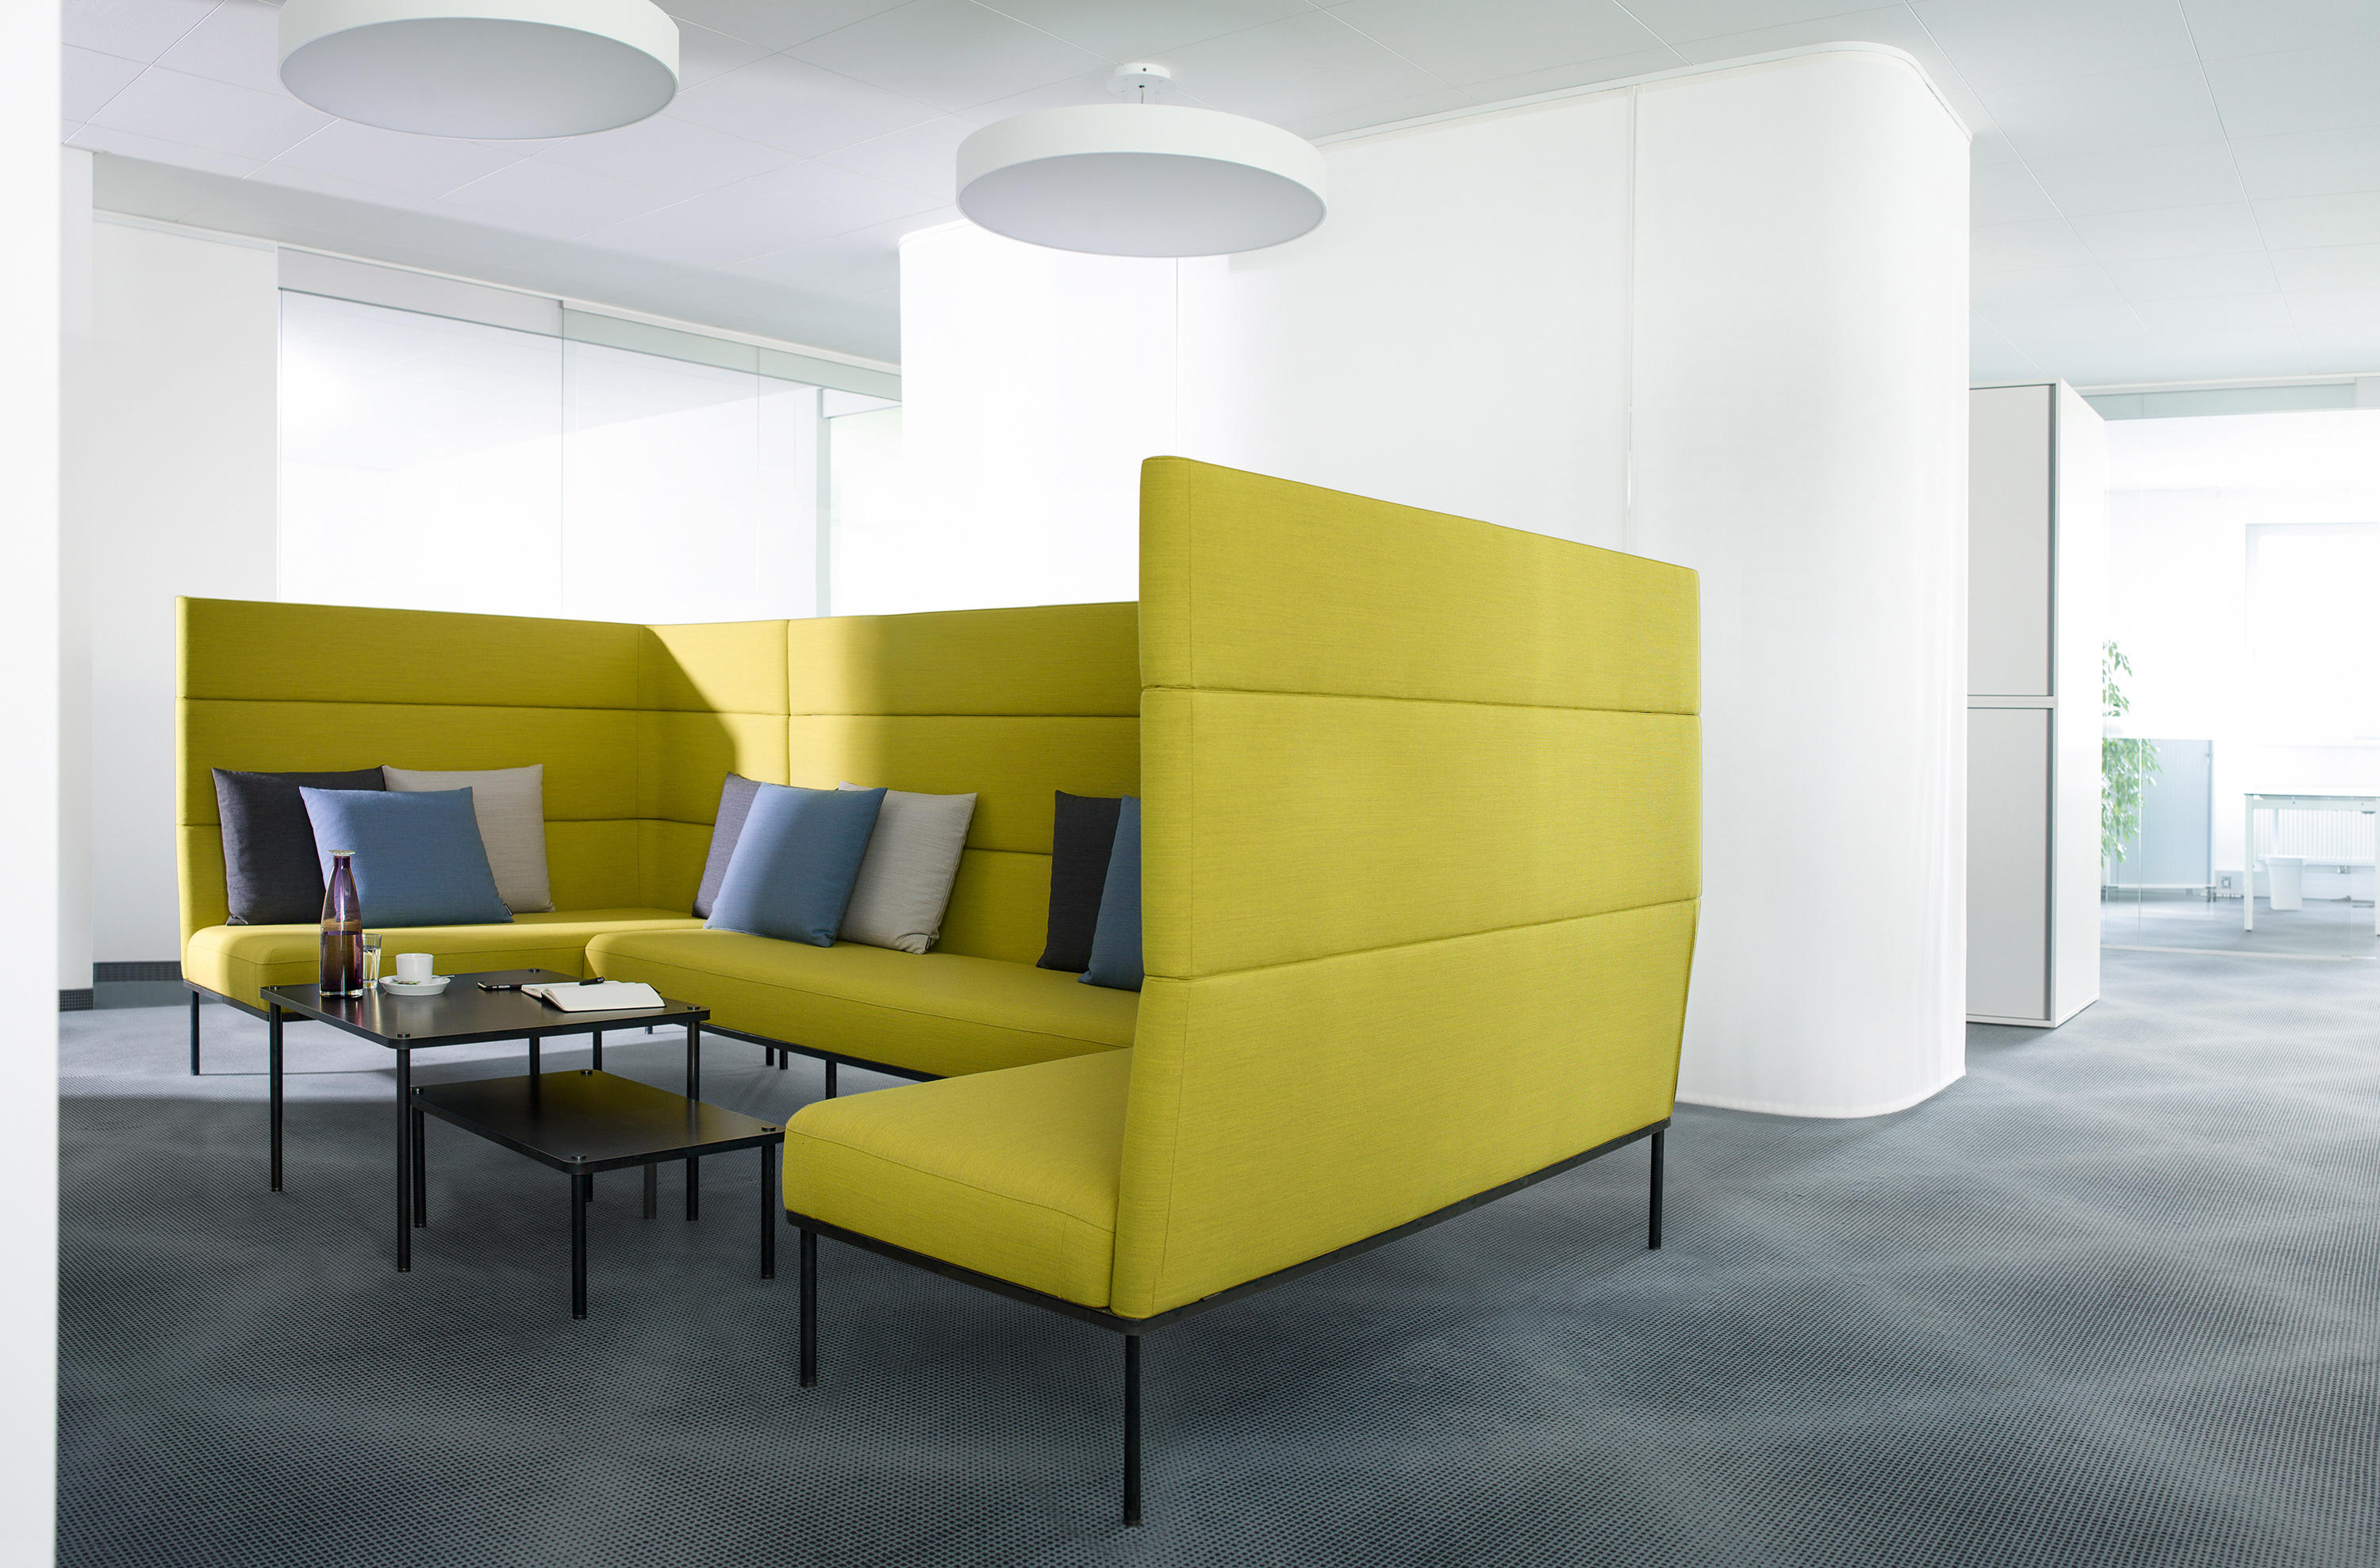 ELEMENT LOUNGE SEATING - Sofas From Wiesner-Hager